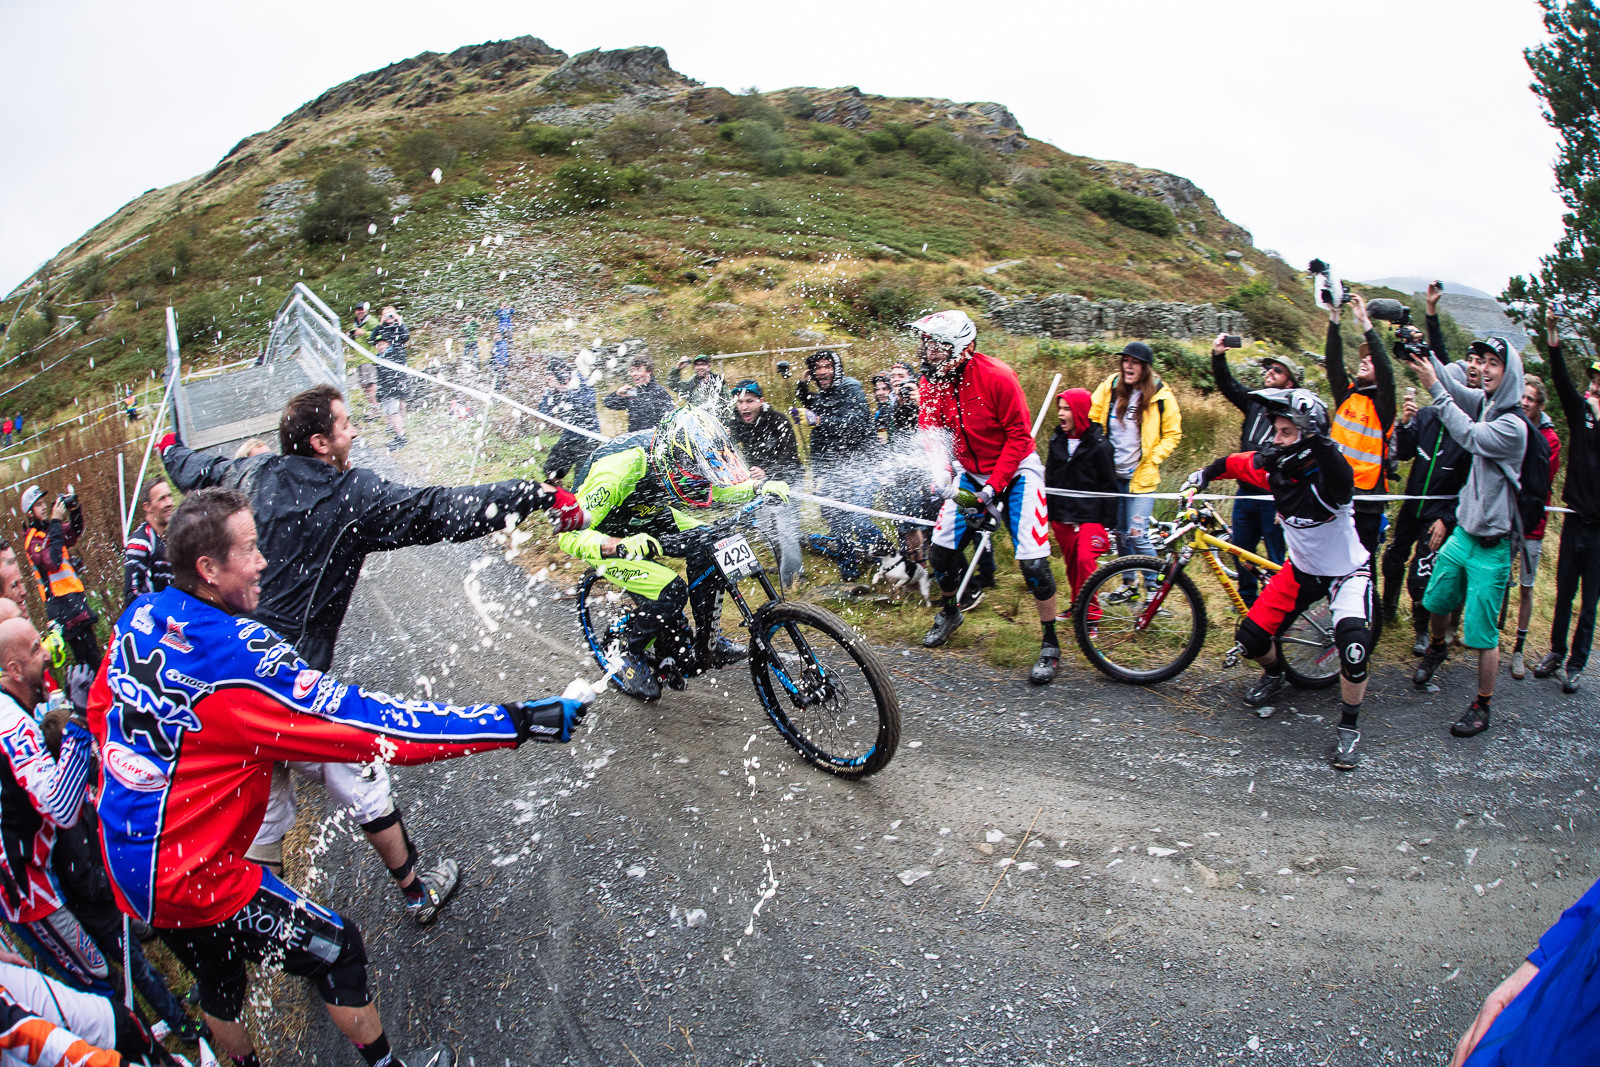 Rob Warner, 2015 British Downhill Series Finals, Antur Stiniog - 2015 British Downhill Series Finals - Mountain Biking Pictures - Vital MTB